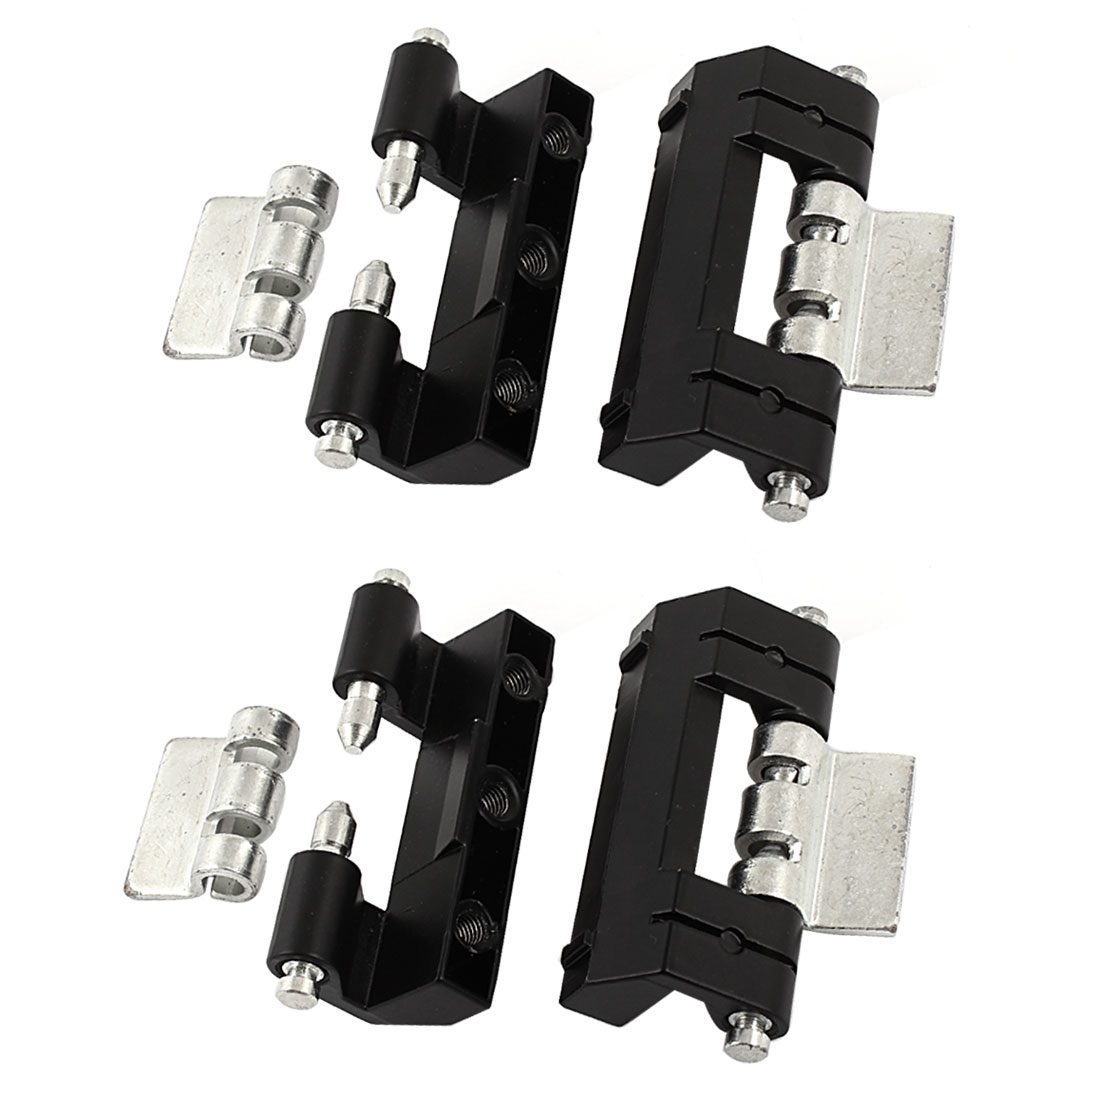 4pcs Cabinets Door Zinc Alloy Concealed Hidden Hinge